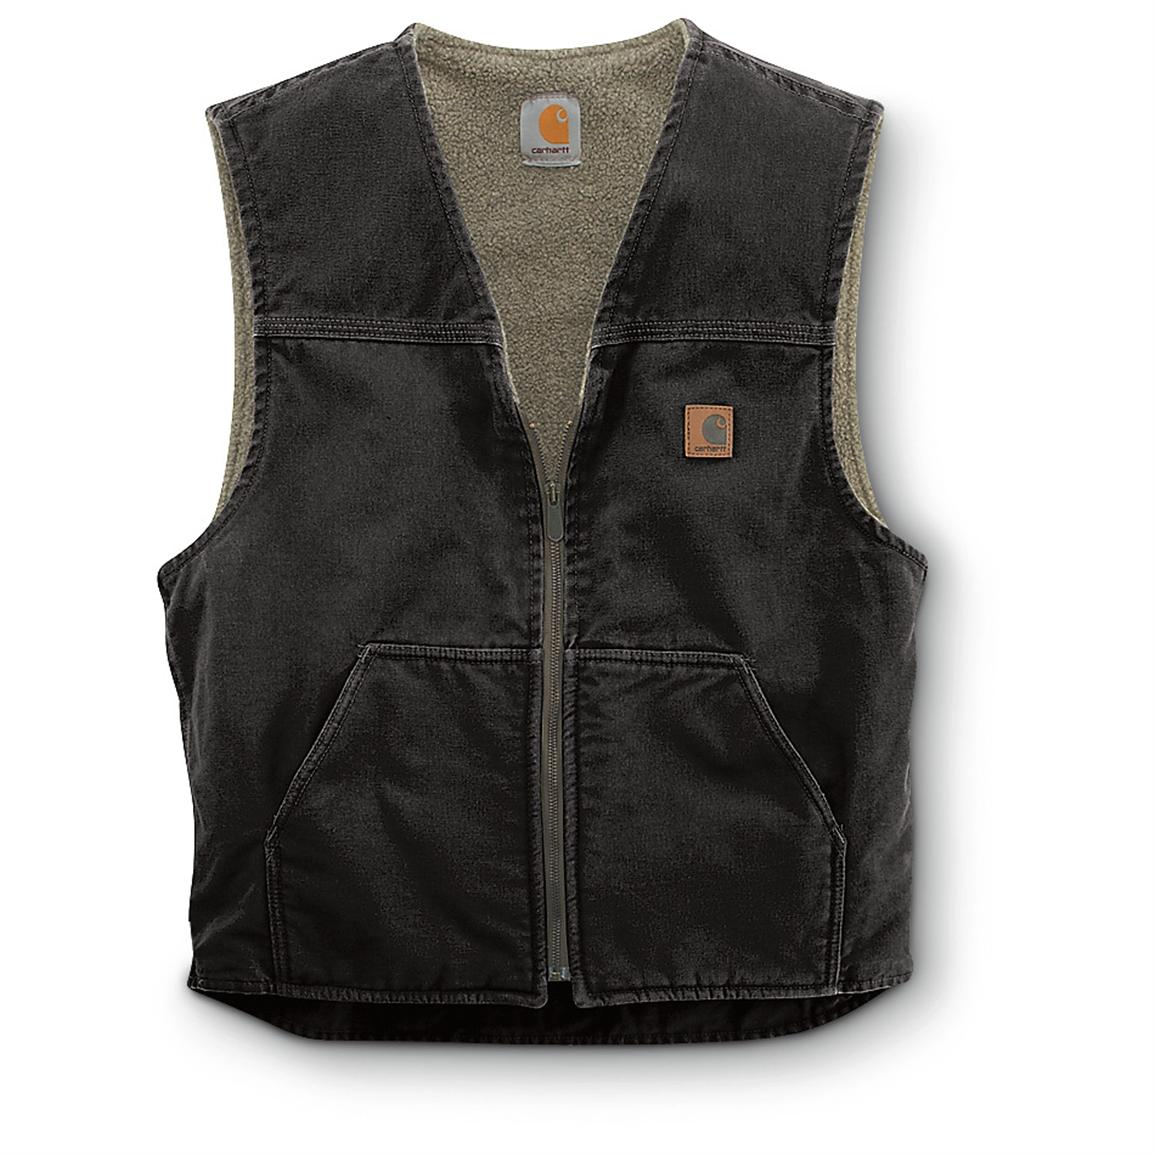 Carhartt Men's Sandstone Rugged Sherpa-Lined Vest, Black